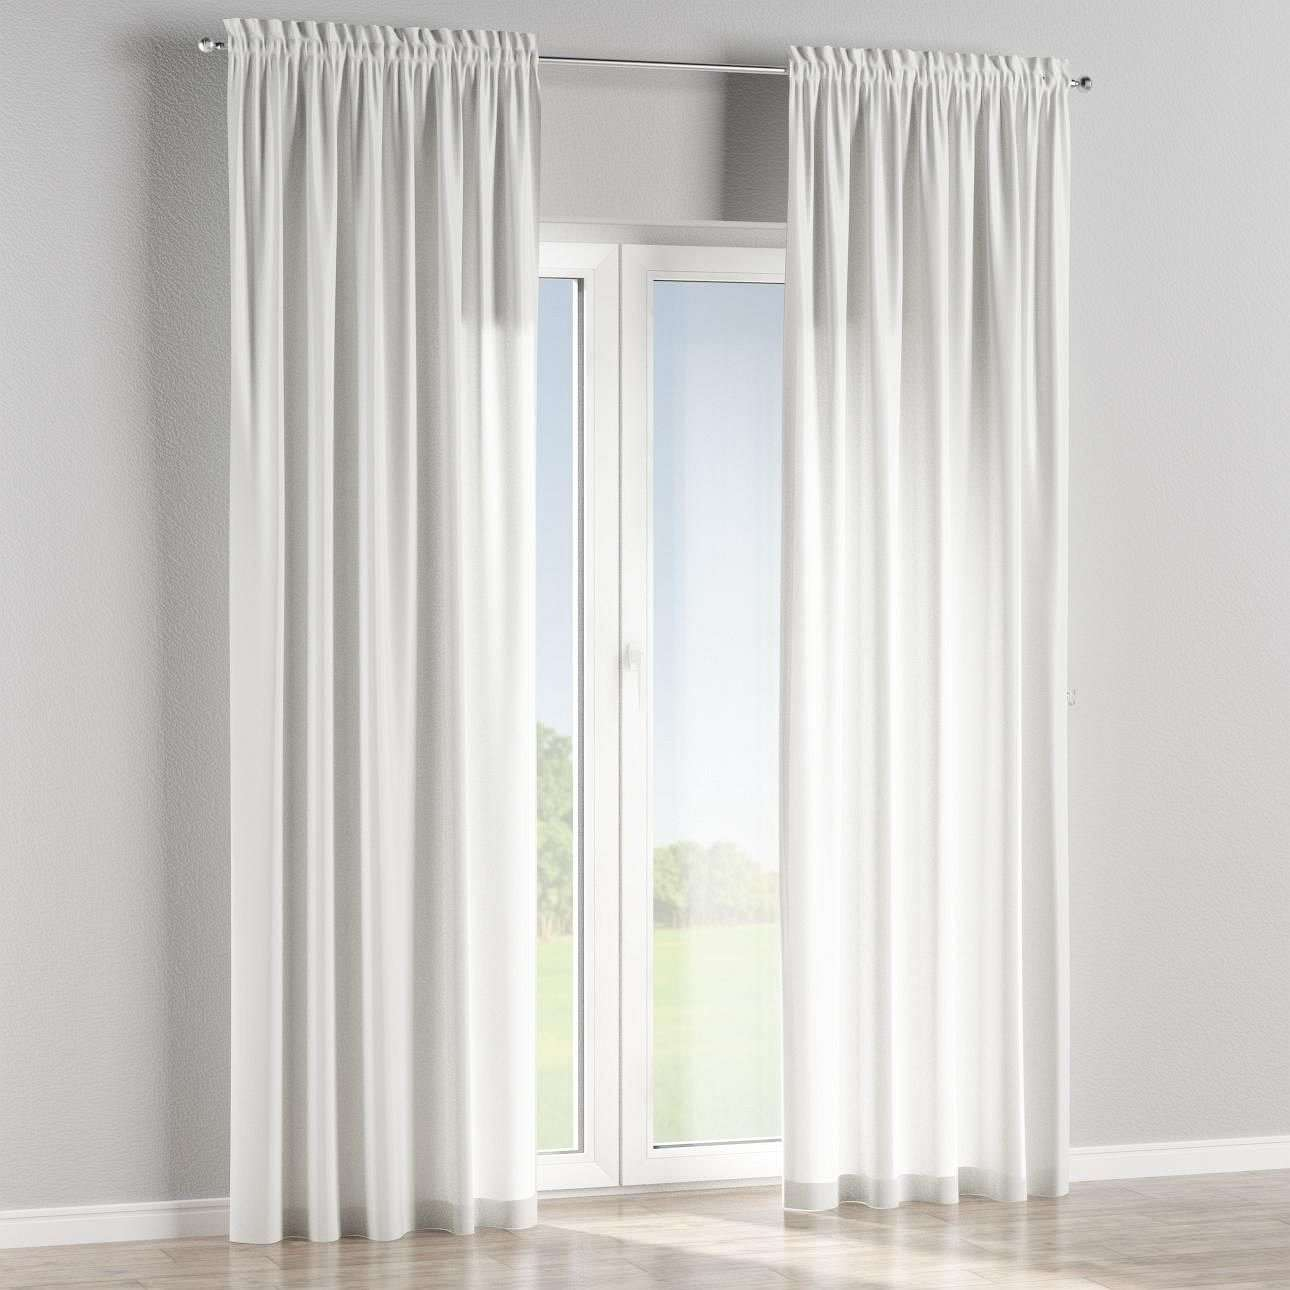 Slot and frill lined curtains in collection Victoria, fabric: 130-03